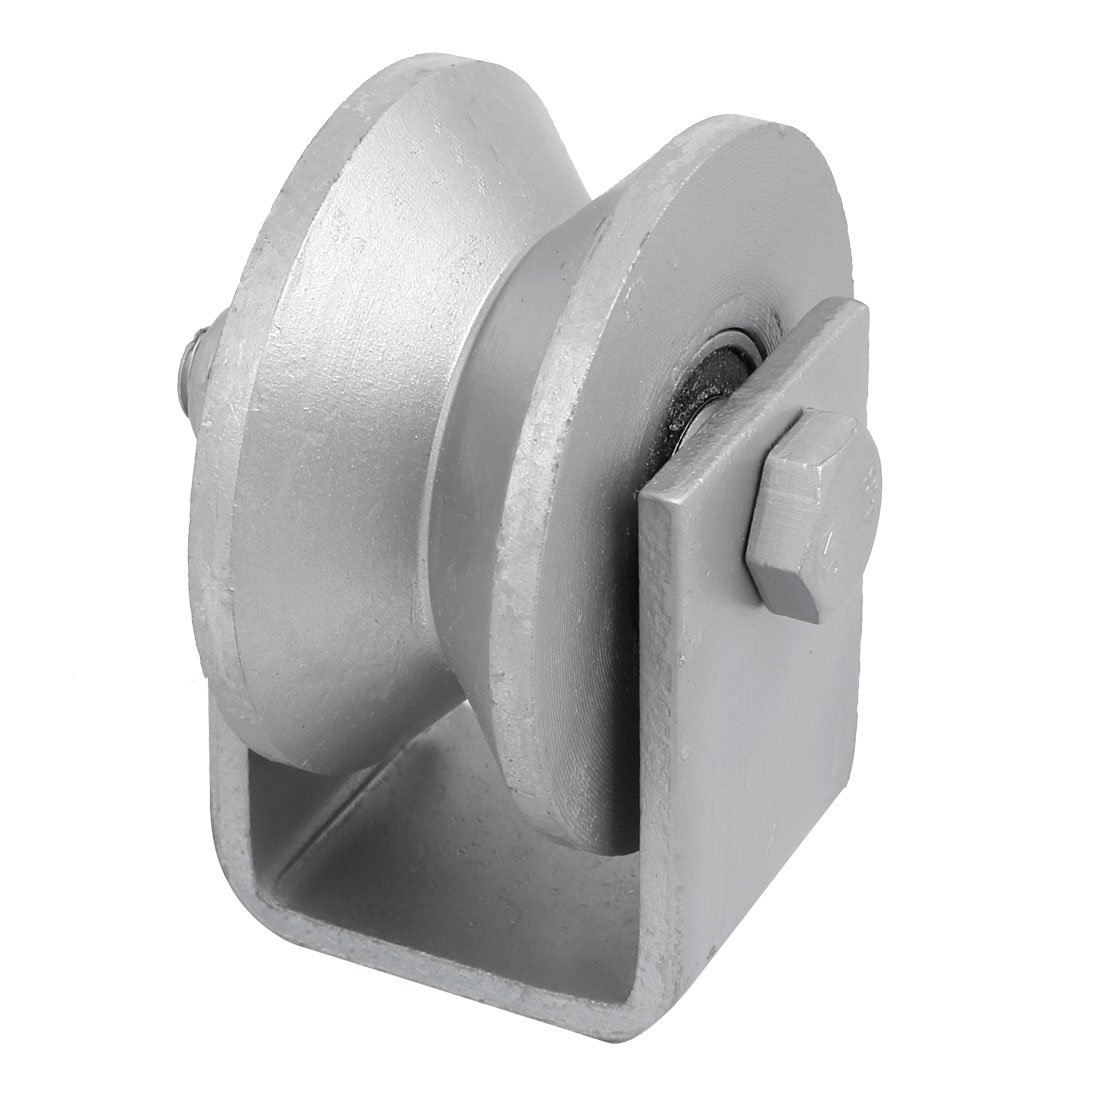 uxcell 3.15-inch Dia V Groove Rigid Caster Wheel for Sliding Door Track